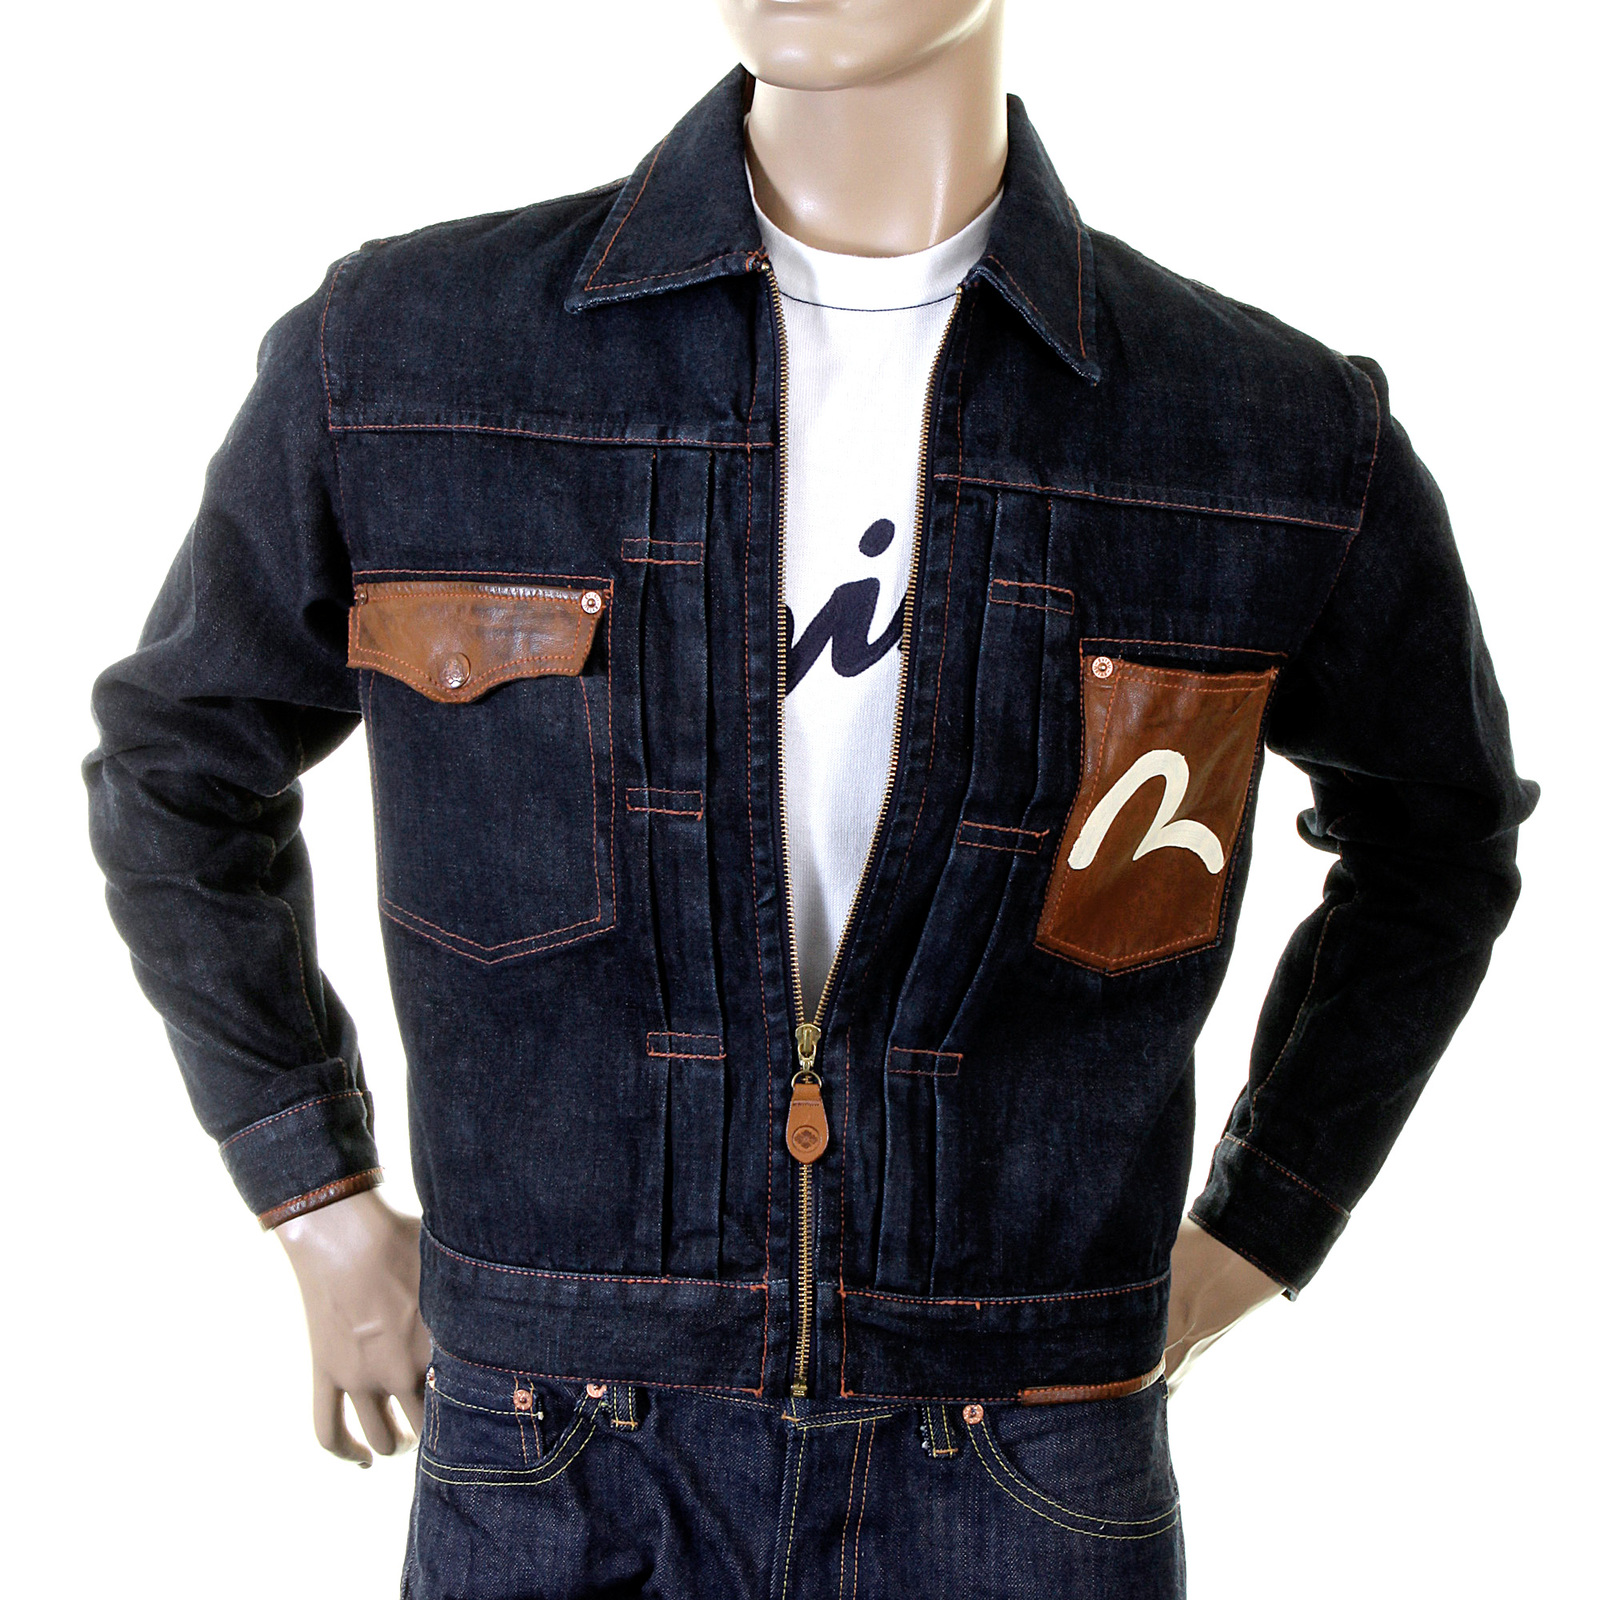 Shop for Mens Stylish Denim Jackets by Evisu at Togged